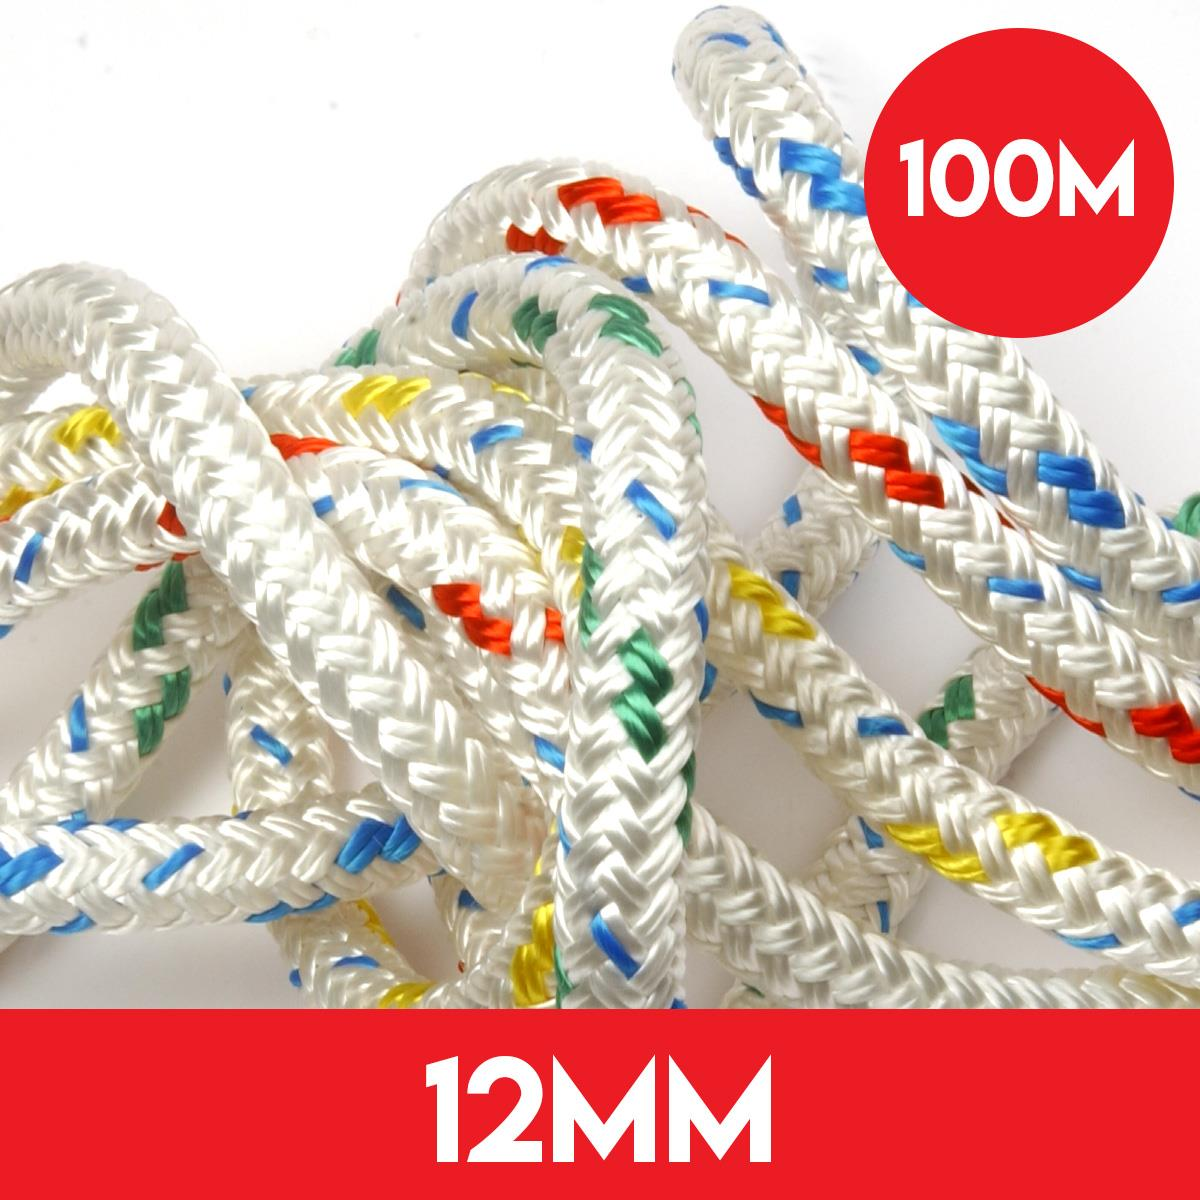 100m Reel of 12mm Polyester Braid on Braid Rope by Kingfisher